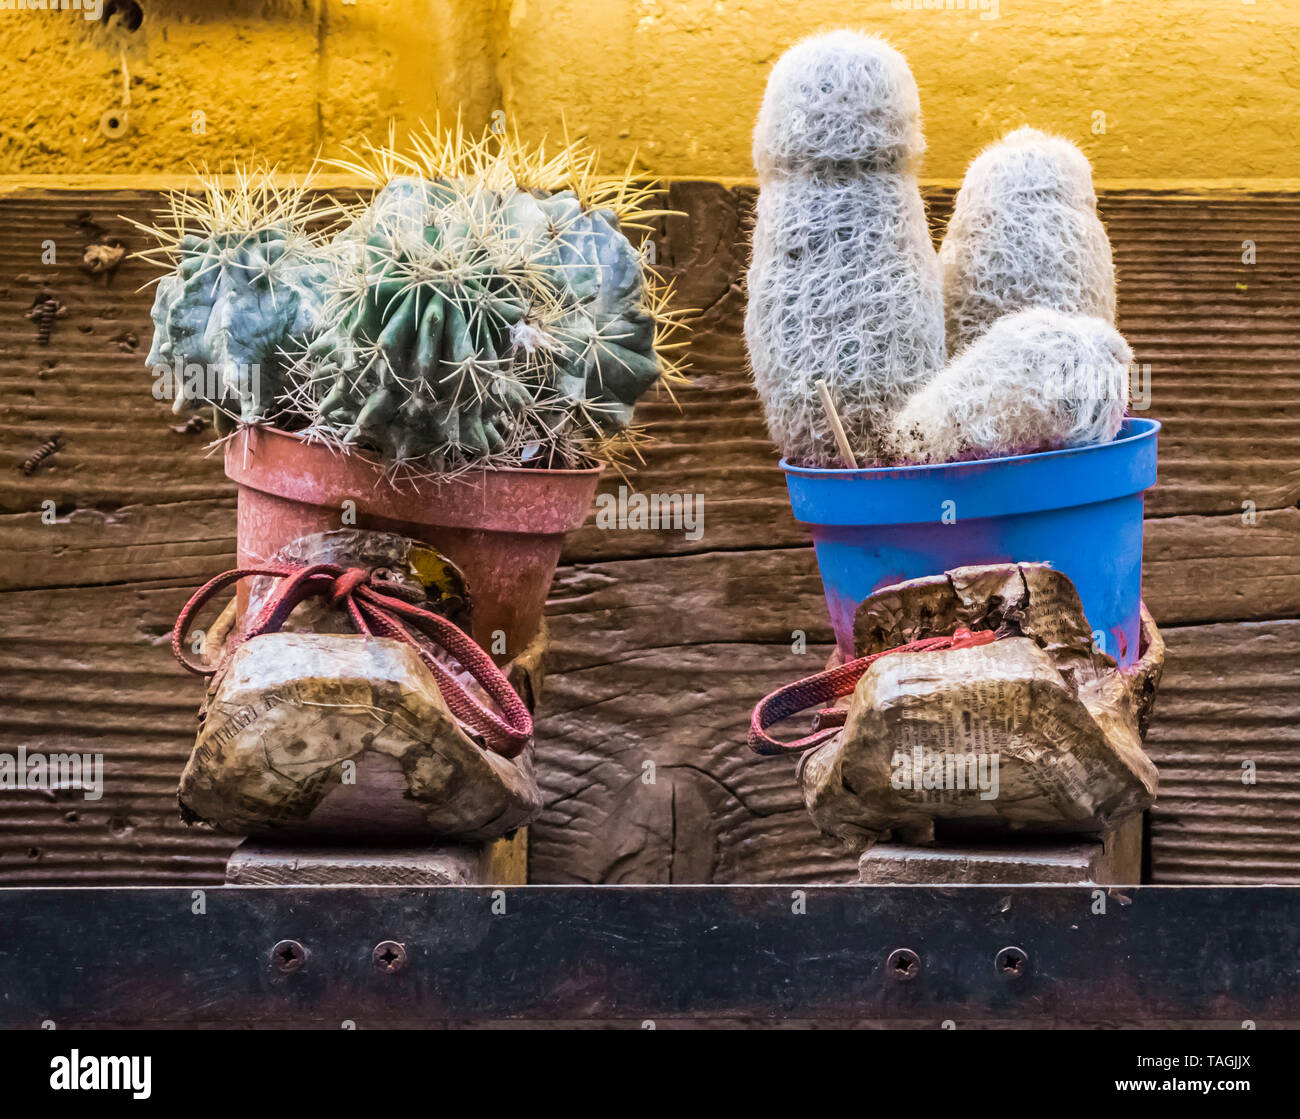 Montepulciano 2019. Pair of used and colored shoes with Cactus plants inside. April 2019 in Montepulciano. Stock Photo